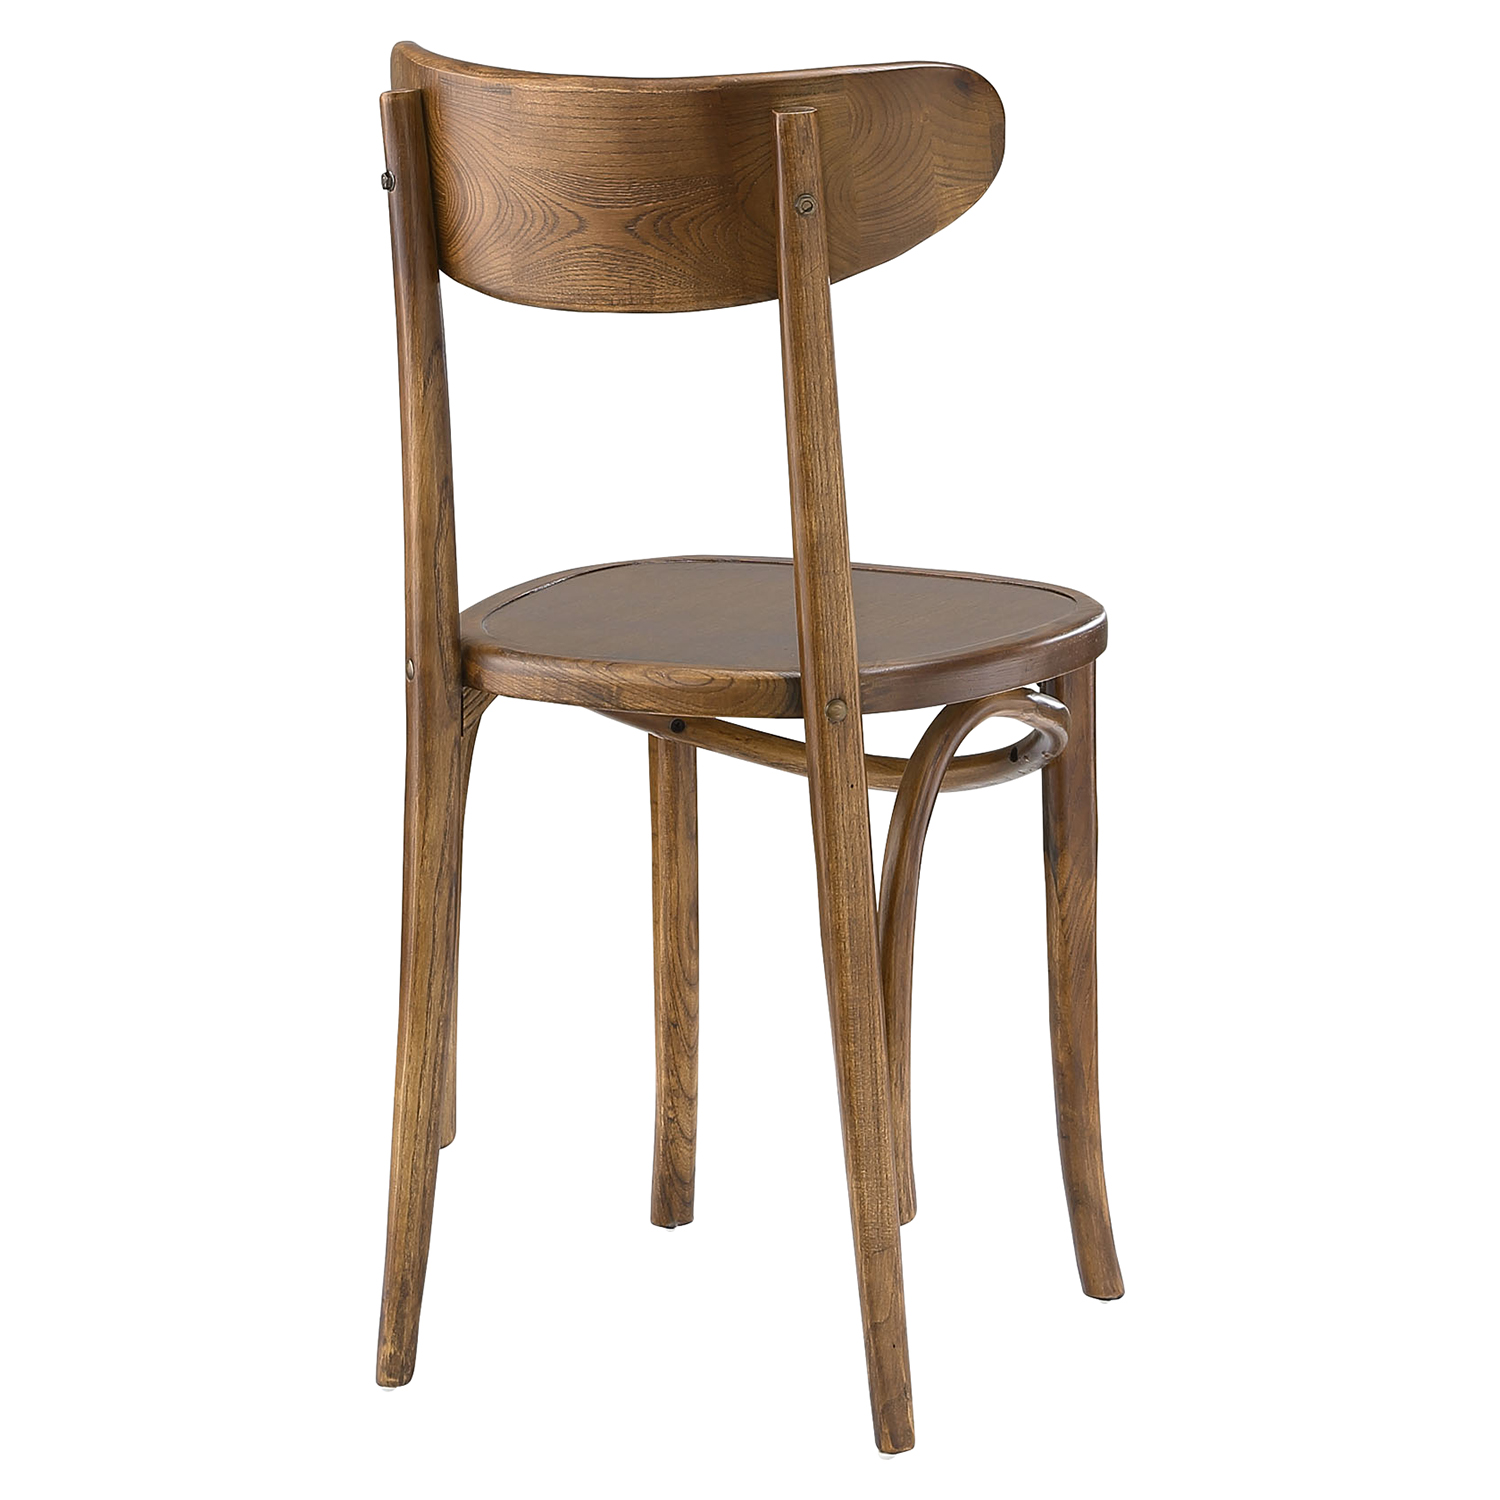 Skate Wood Dining Side Chair - Walnut - EEI-1542-WAL